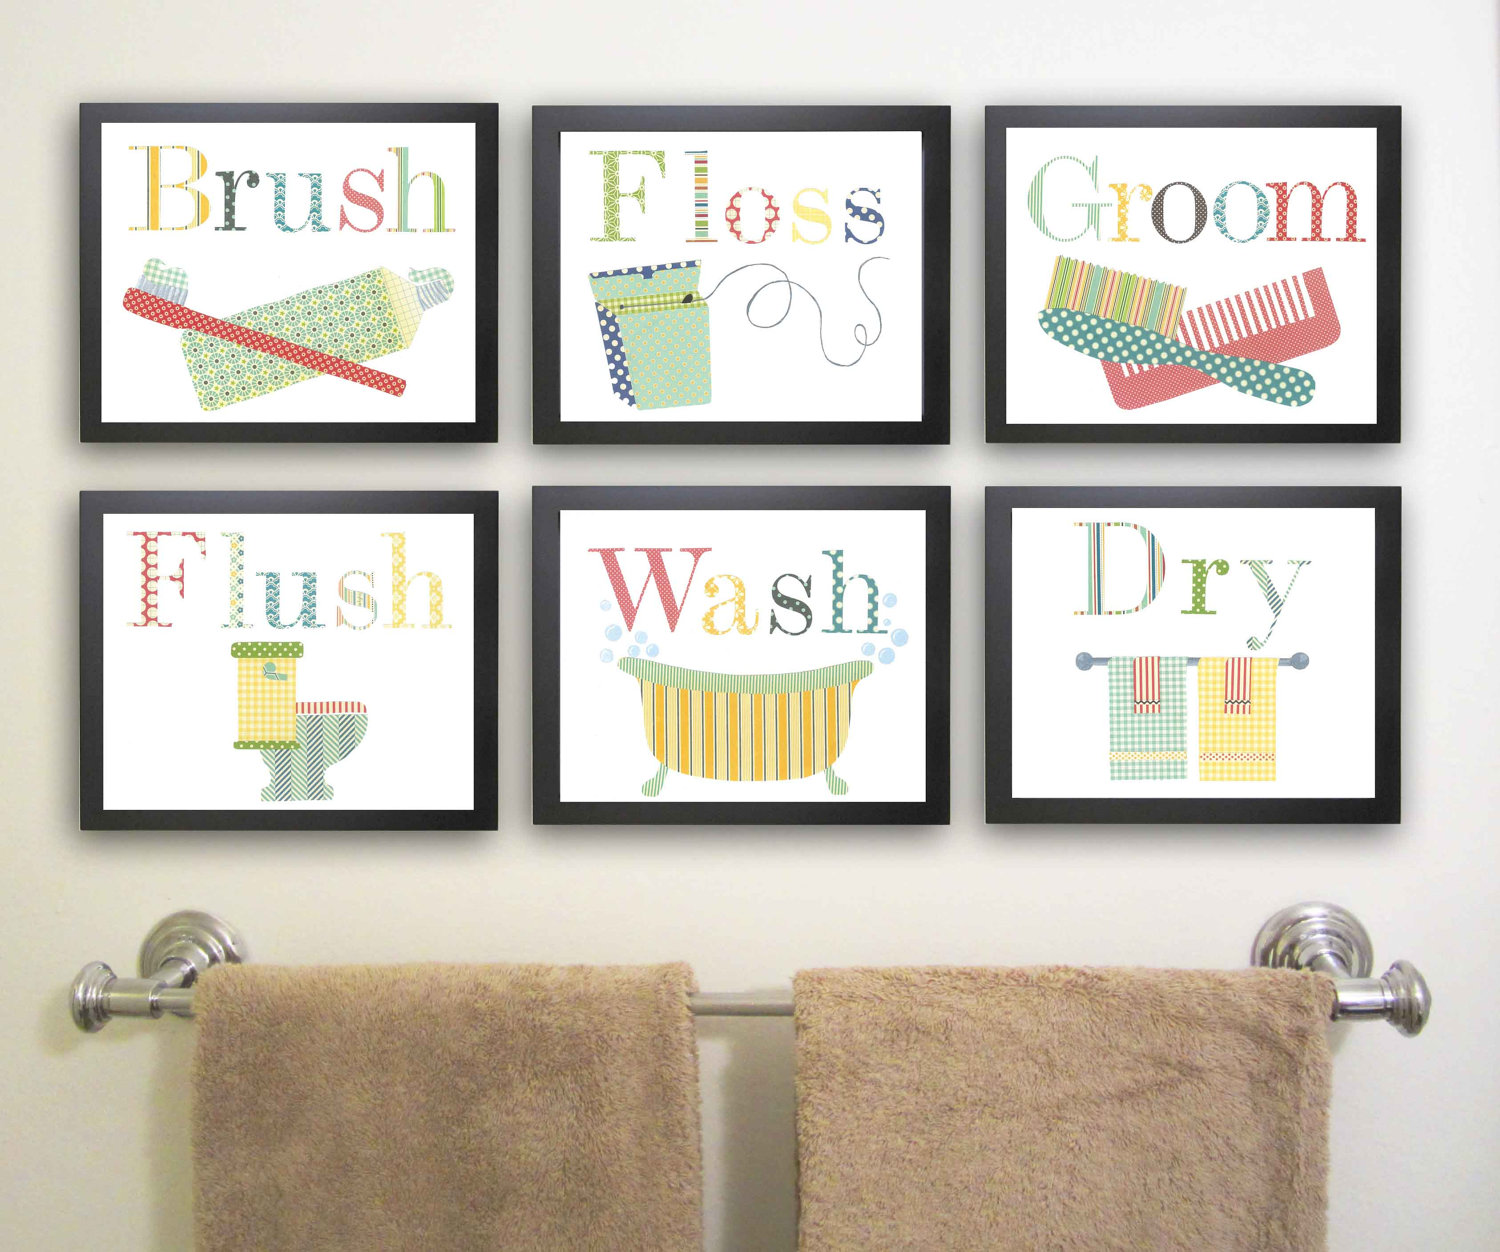 Bathroom wall art decorating tips inoutinterior for Art for bathroom ideas